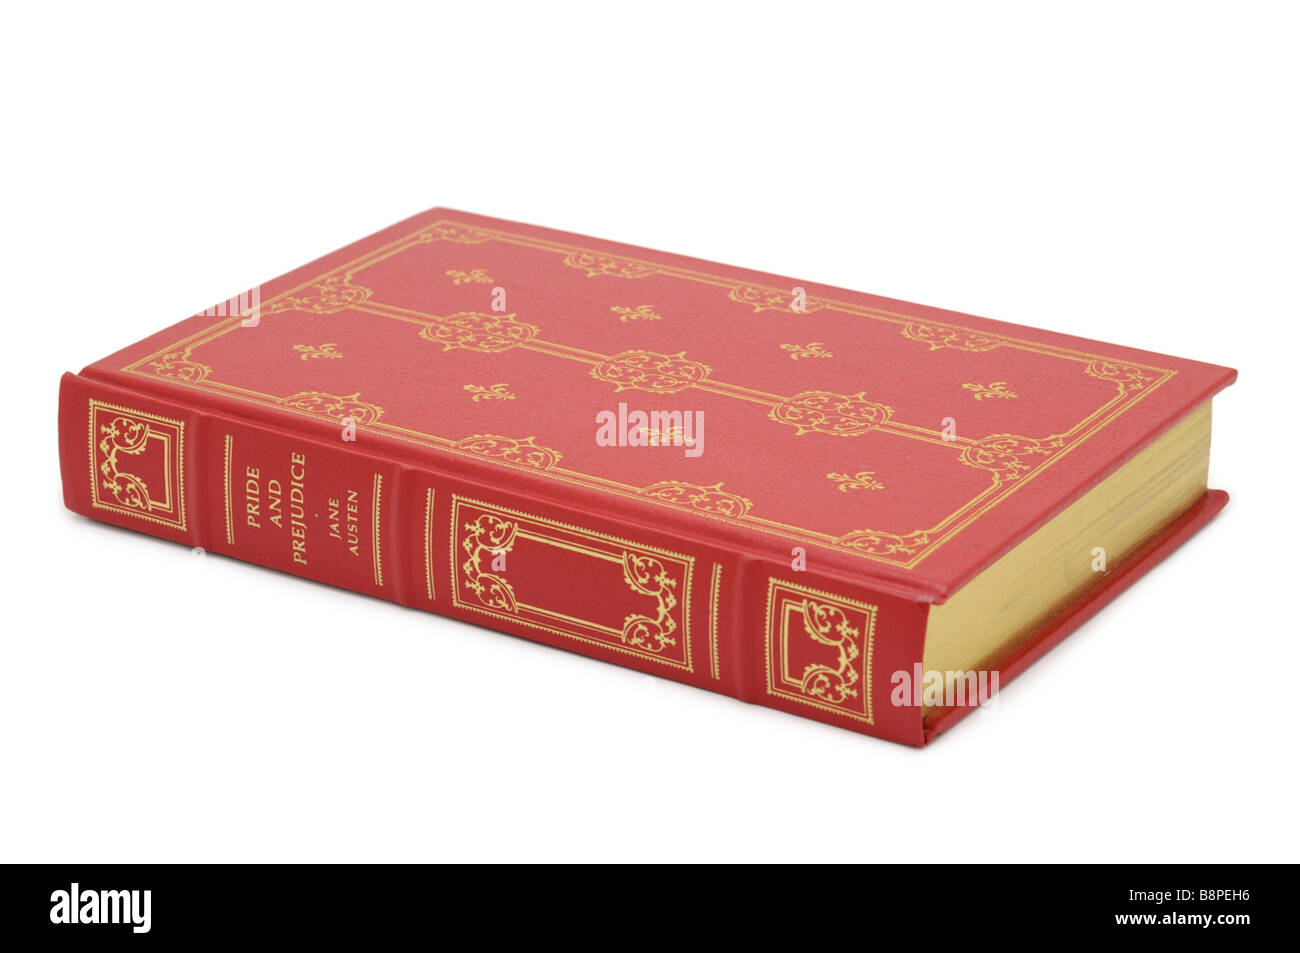 Pride and Prejudice, Jane Austen - Stock Image